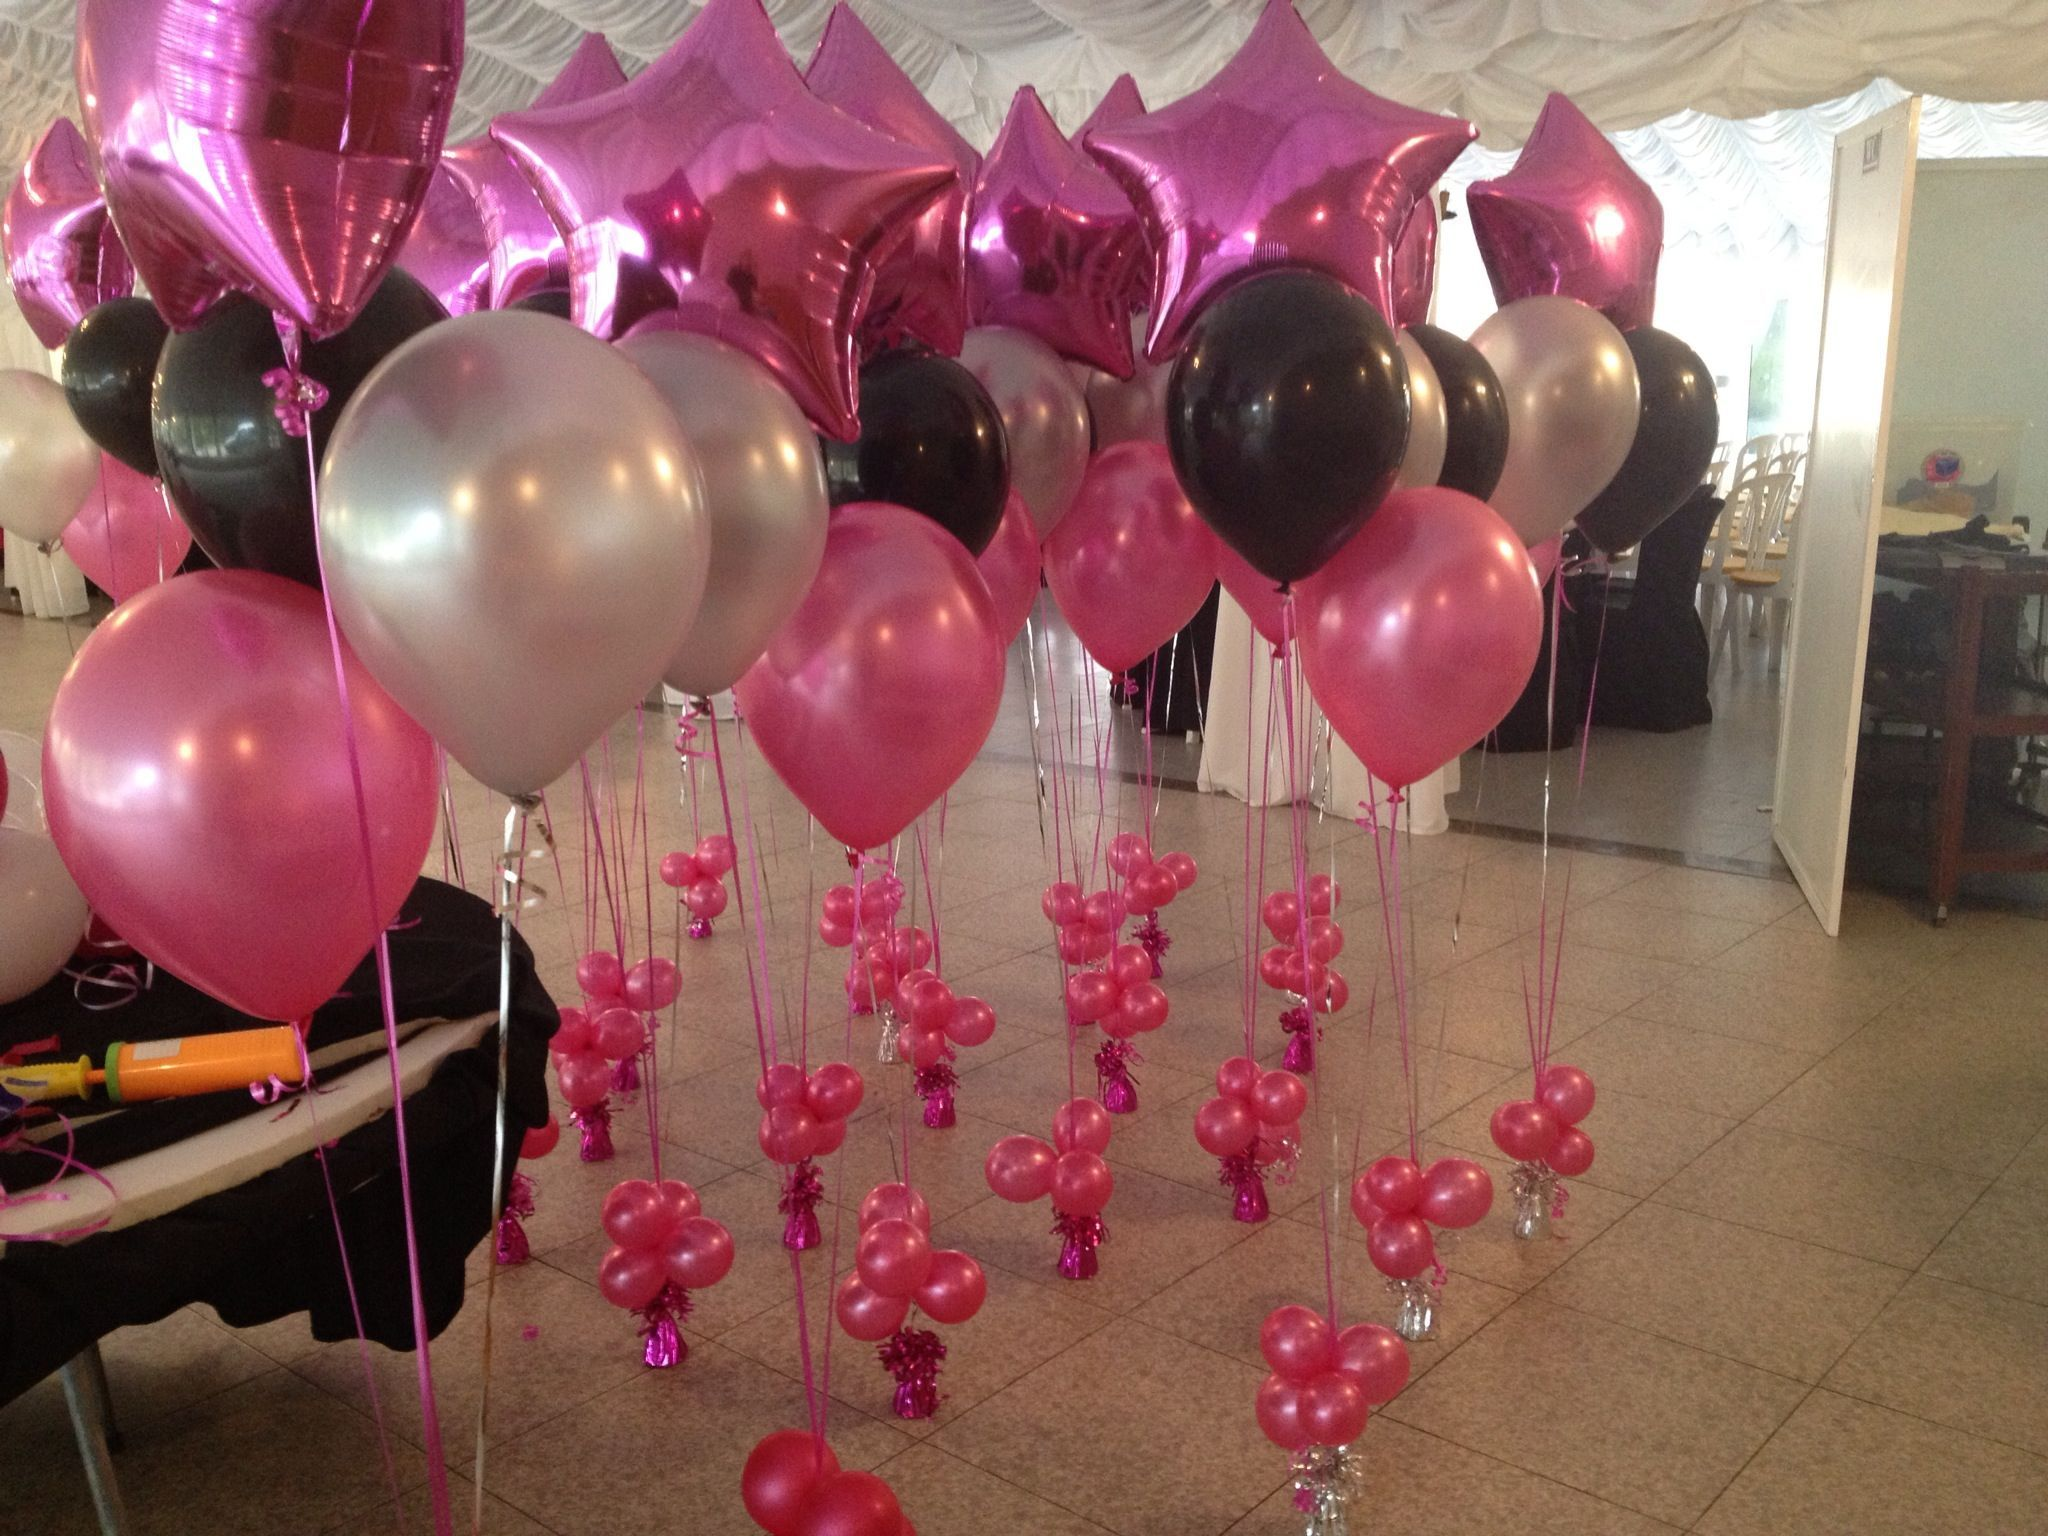 Images Of Balloons White Pink Black Silver Floating On Ceiling Yahoo Image Search Results 30 Anos